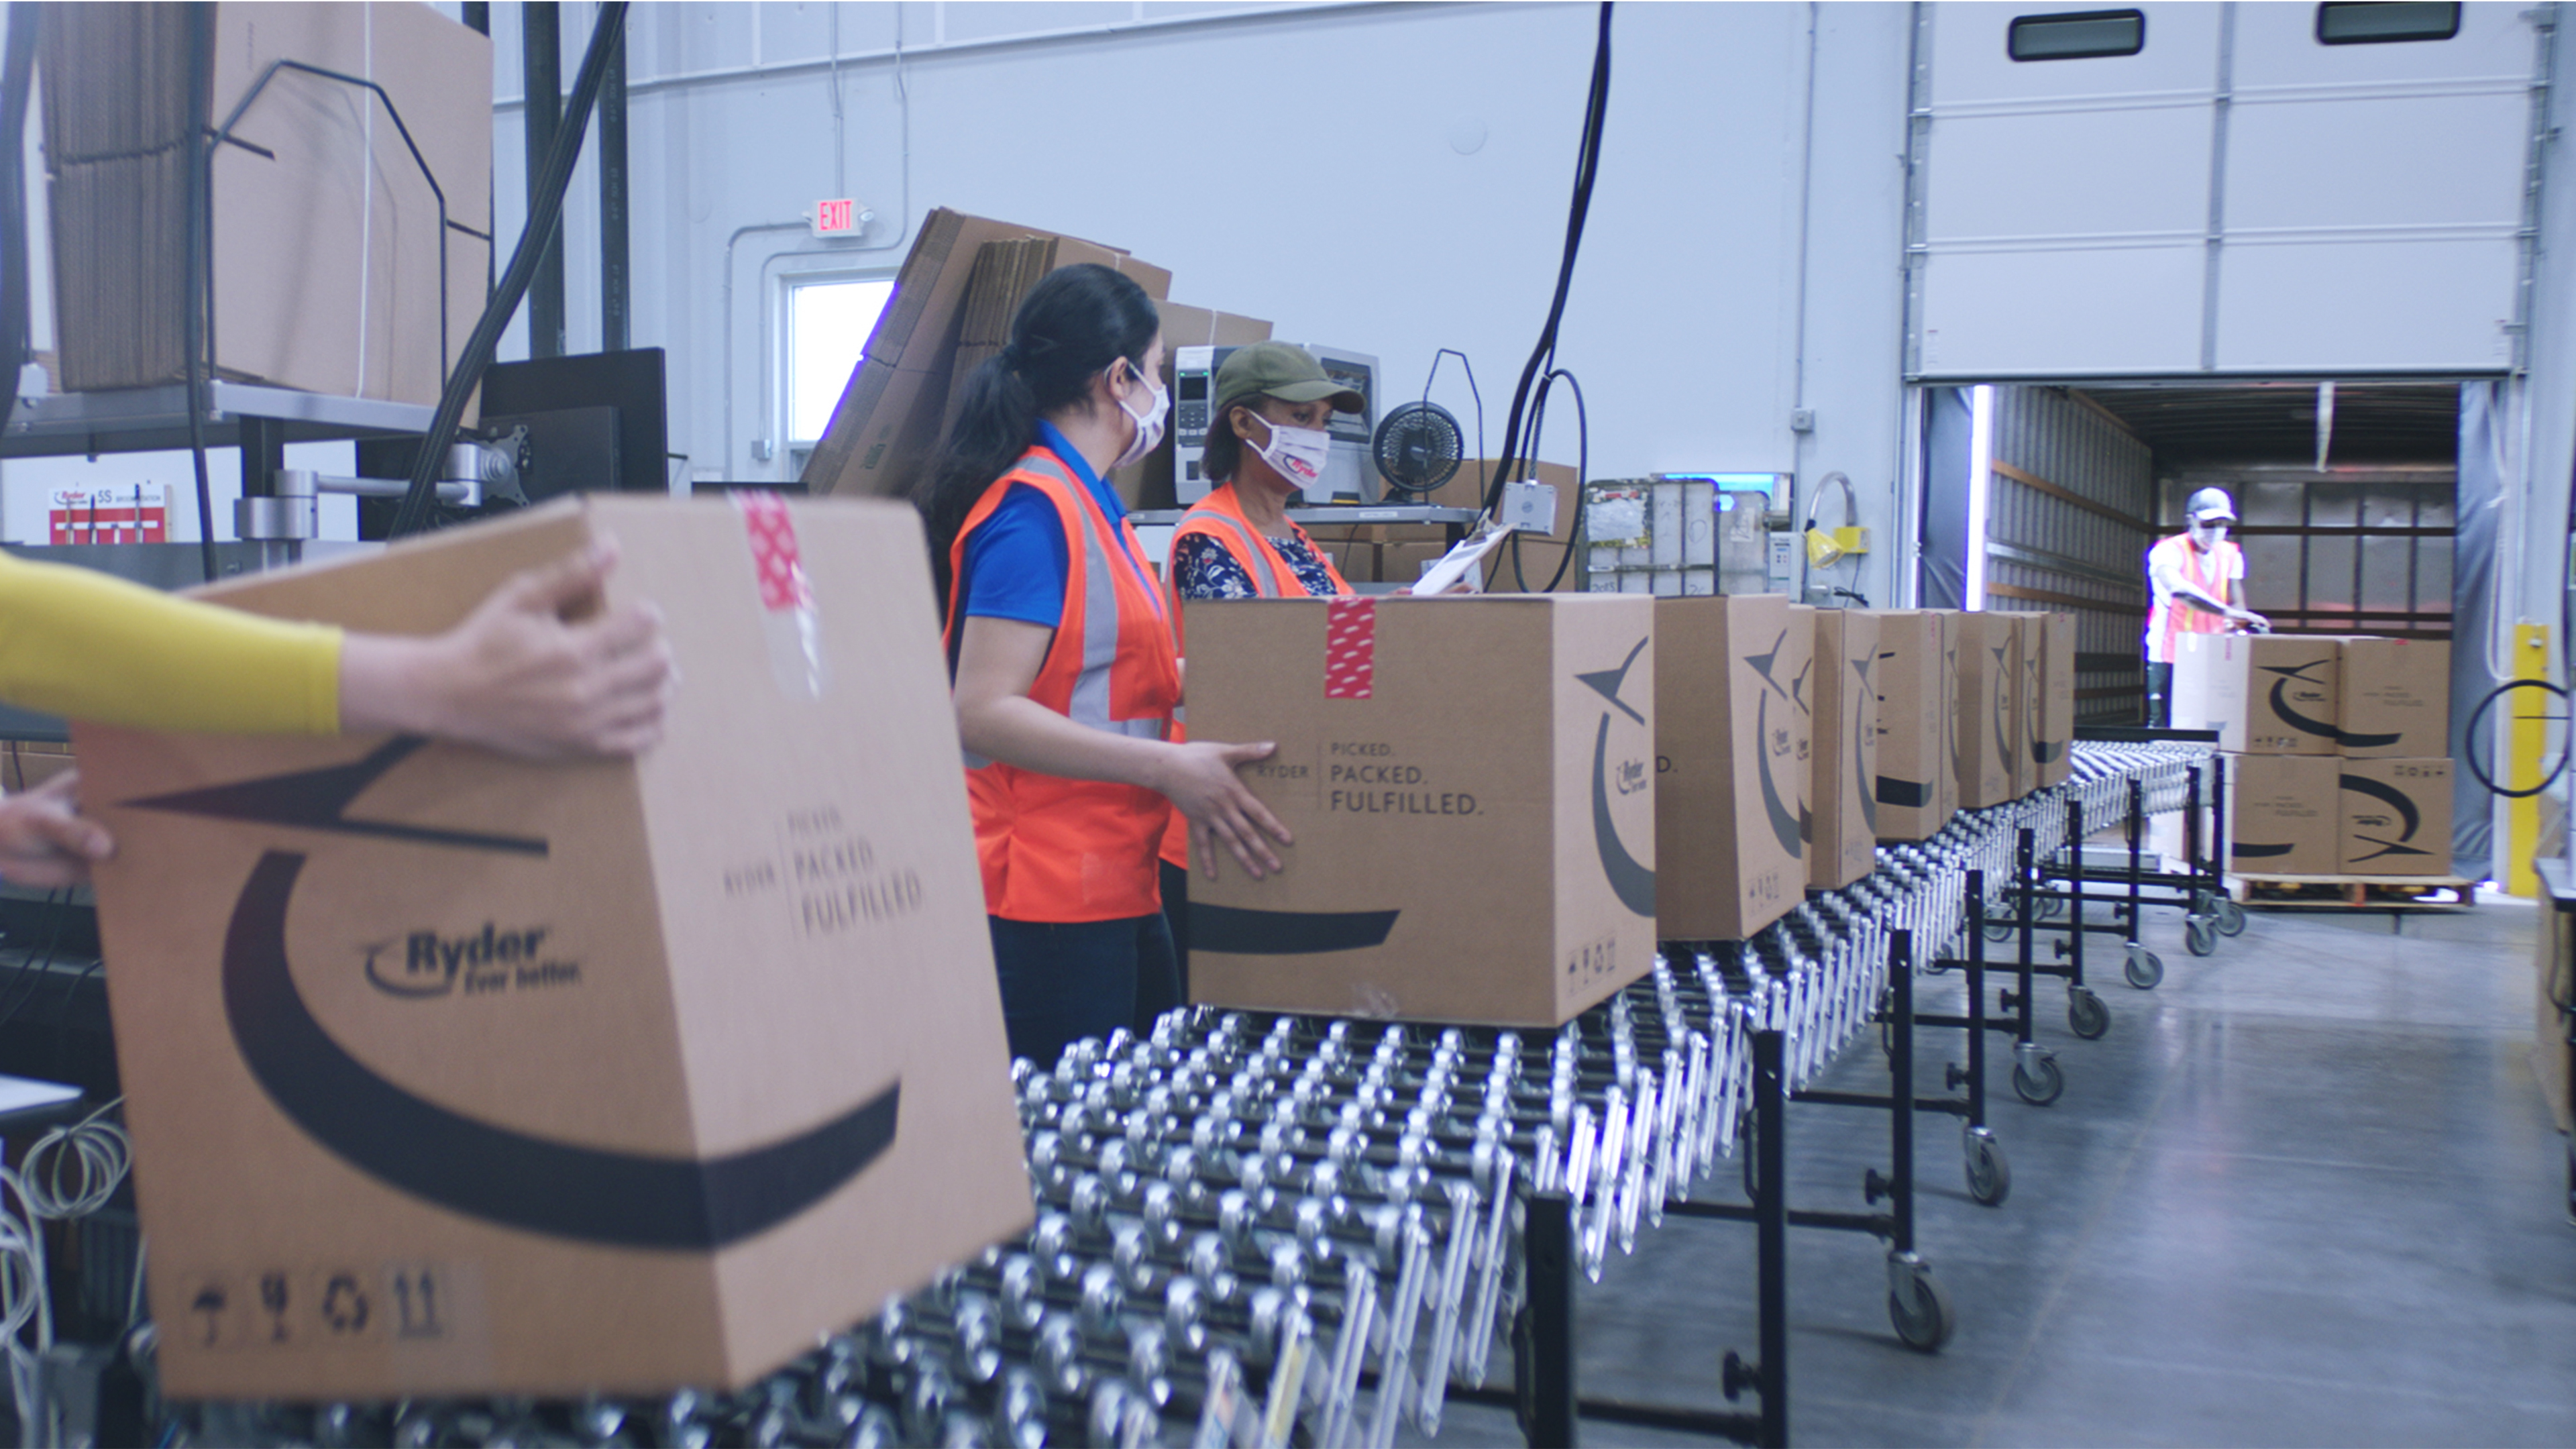 """Historically known for its more visible commercial truck rental and leasing business, Ryder's new brand campaign """"Ever better? World of Logistics"""" offers a glimpse behind the scenes into the 3PL's supply chain solutions, including its e-commerce fulfillment network. (Photo: Business Wire)"""